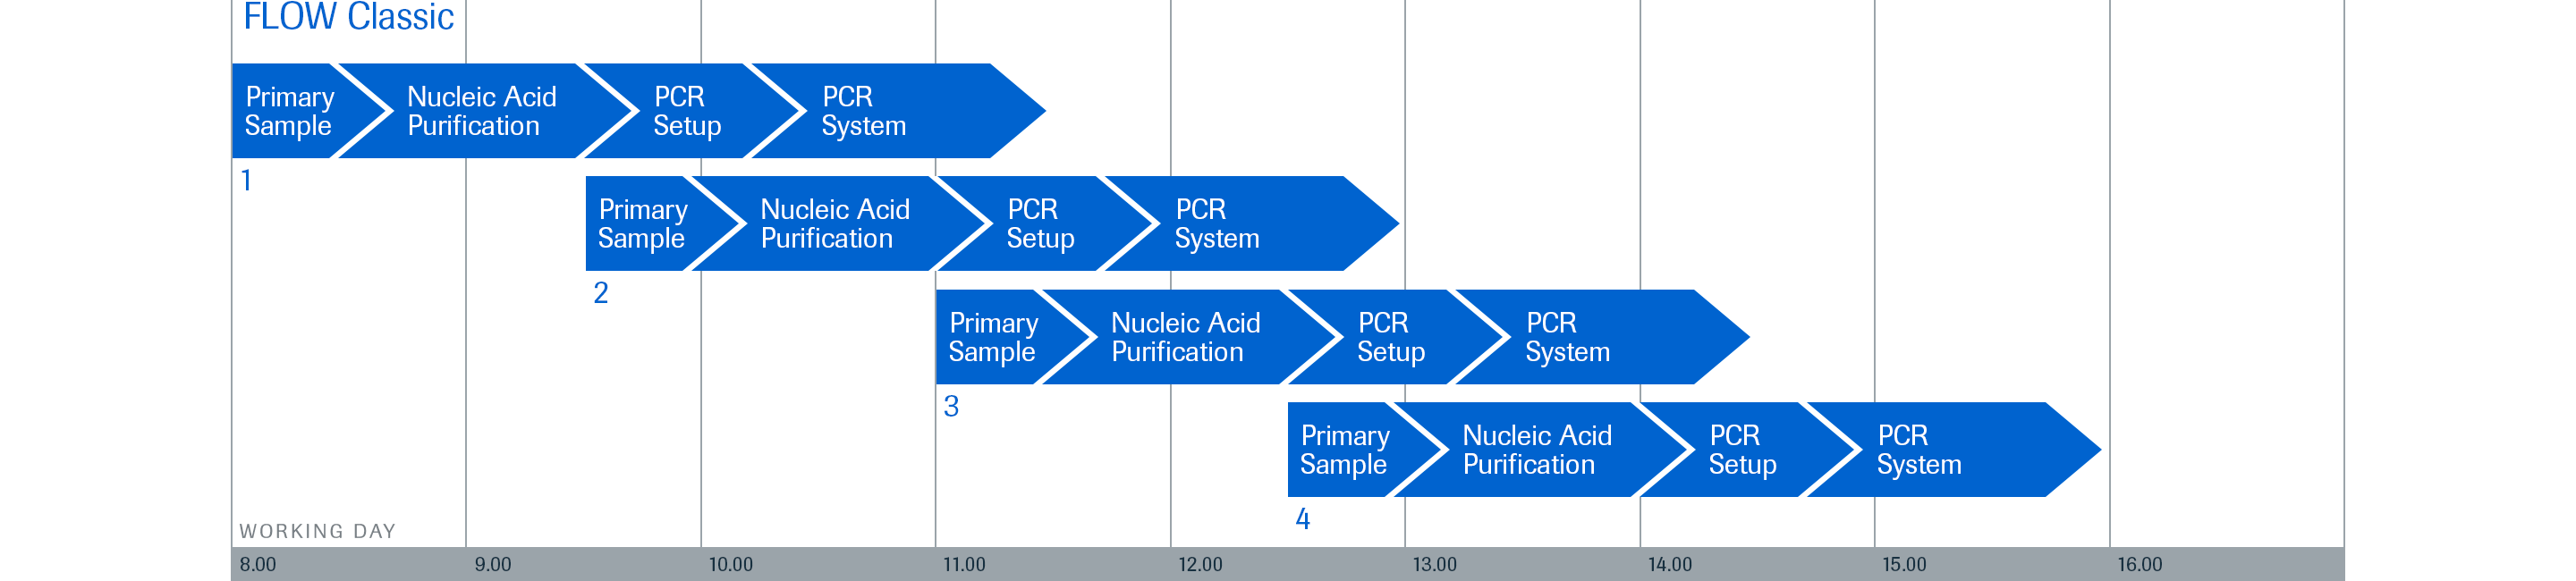 RMD_NAP qPCR_FLOW Classic Turnaround Time Chart